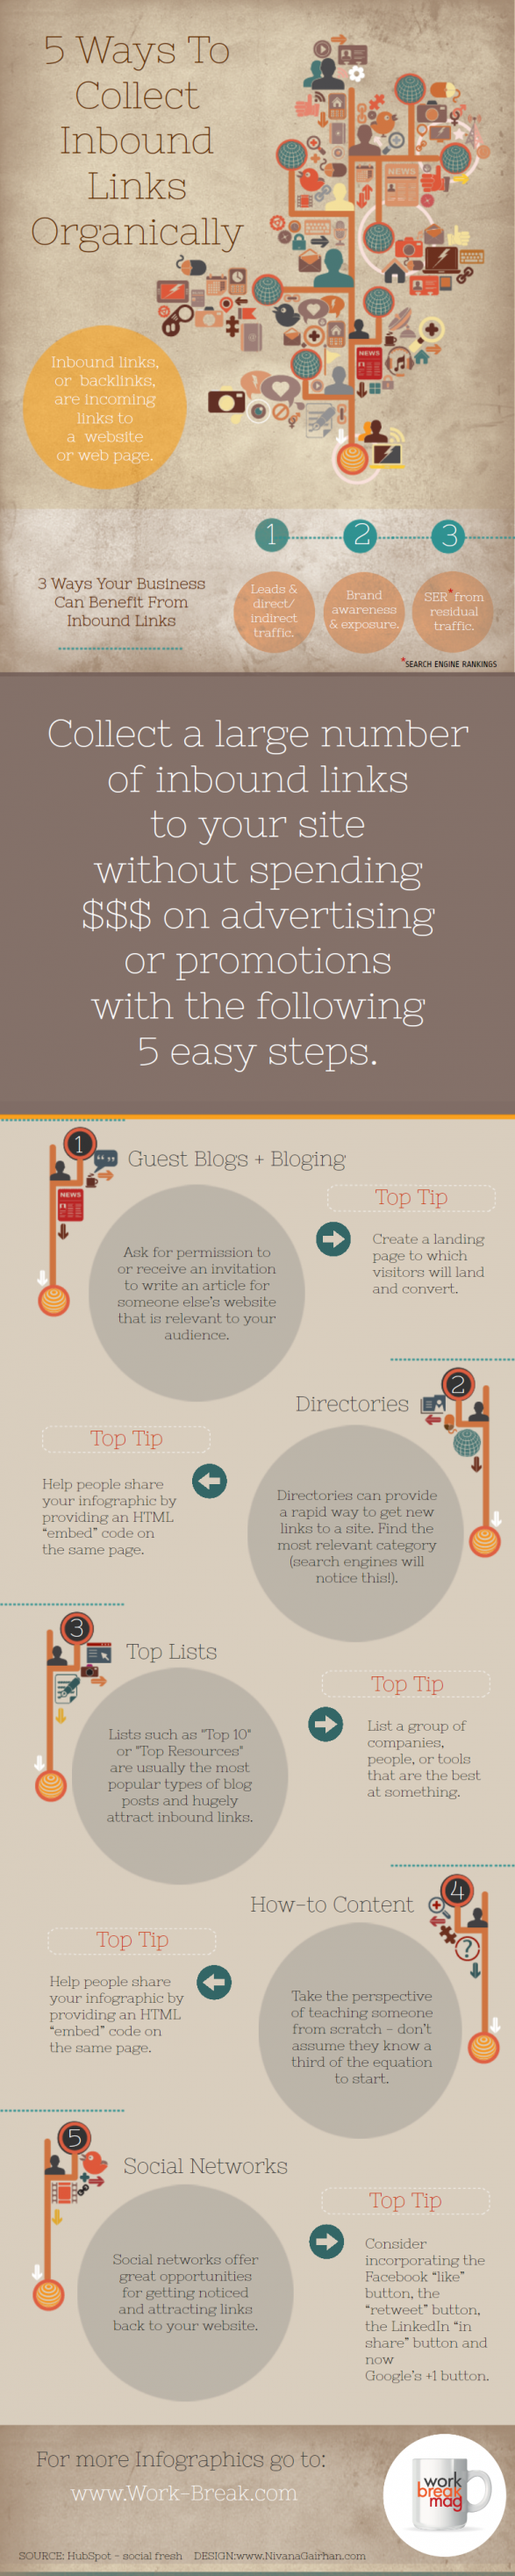 5 Ways To Collect Inbound Links Organically